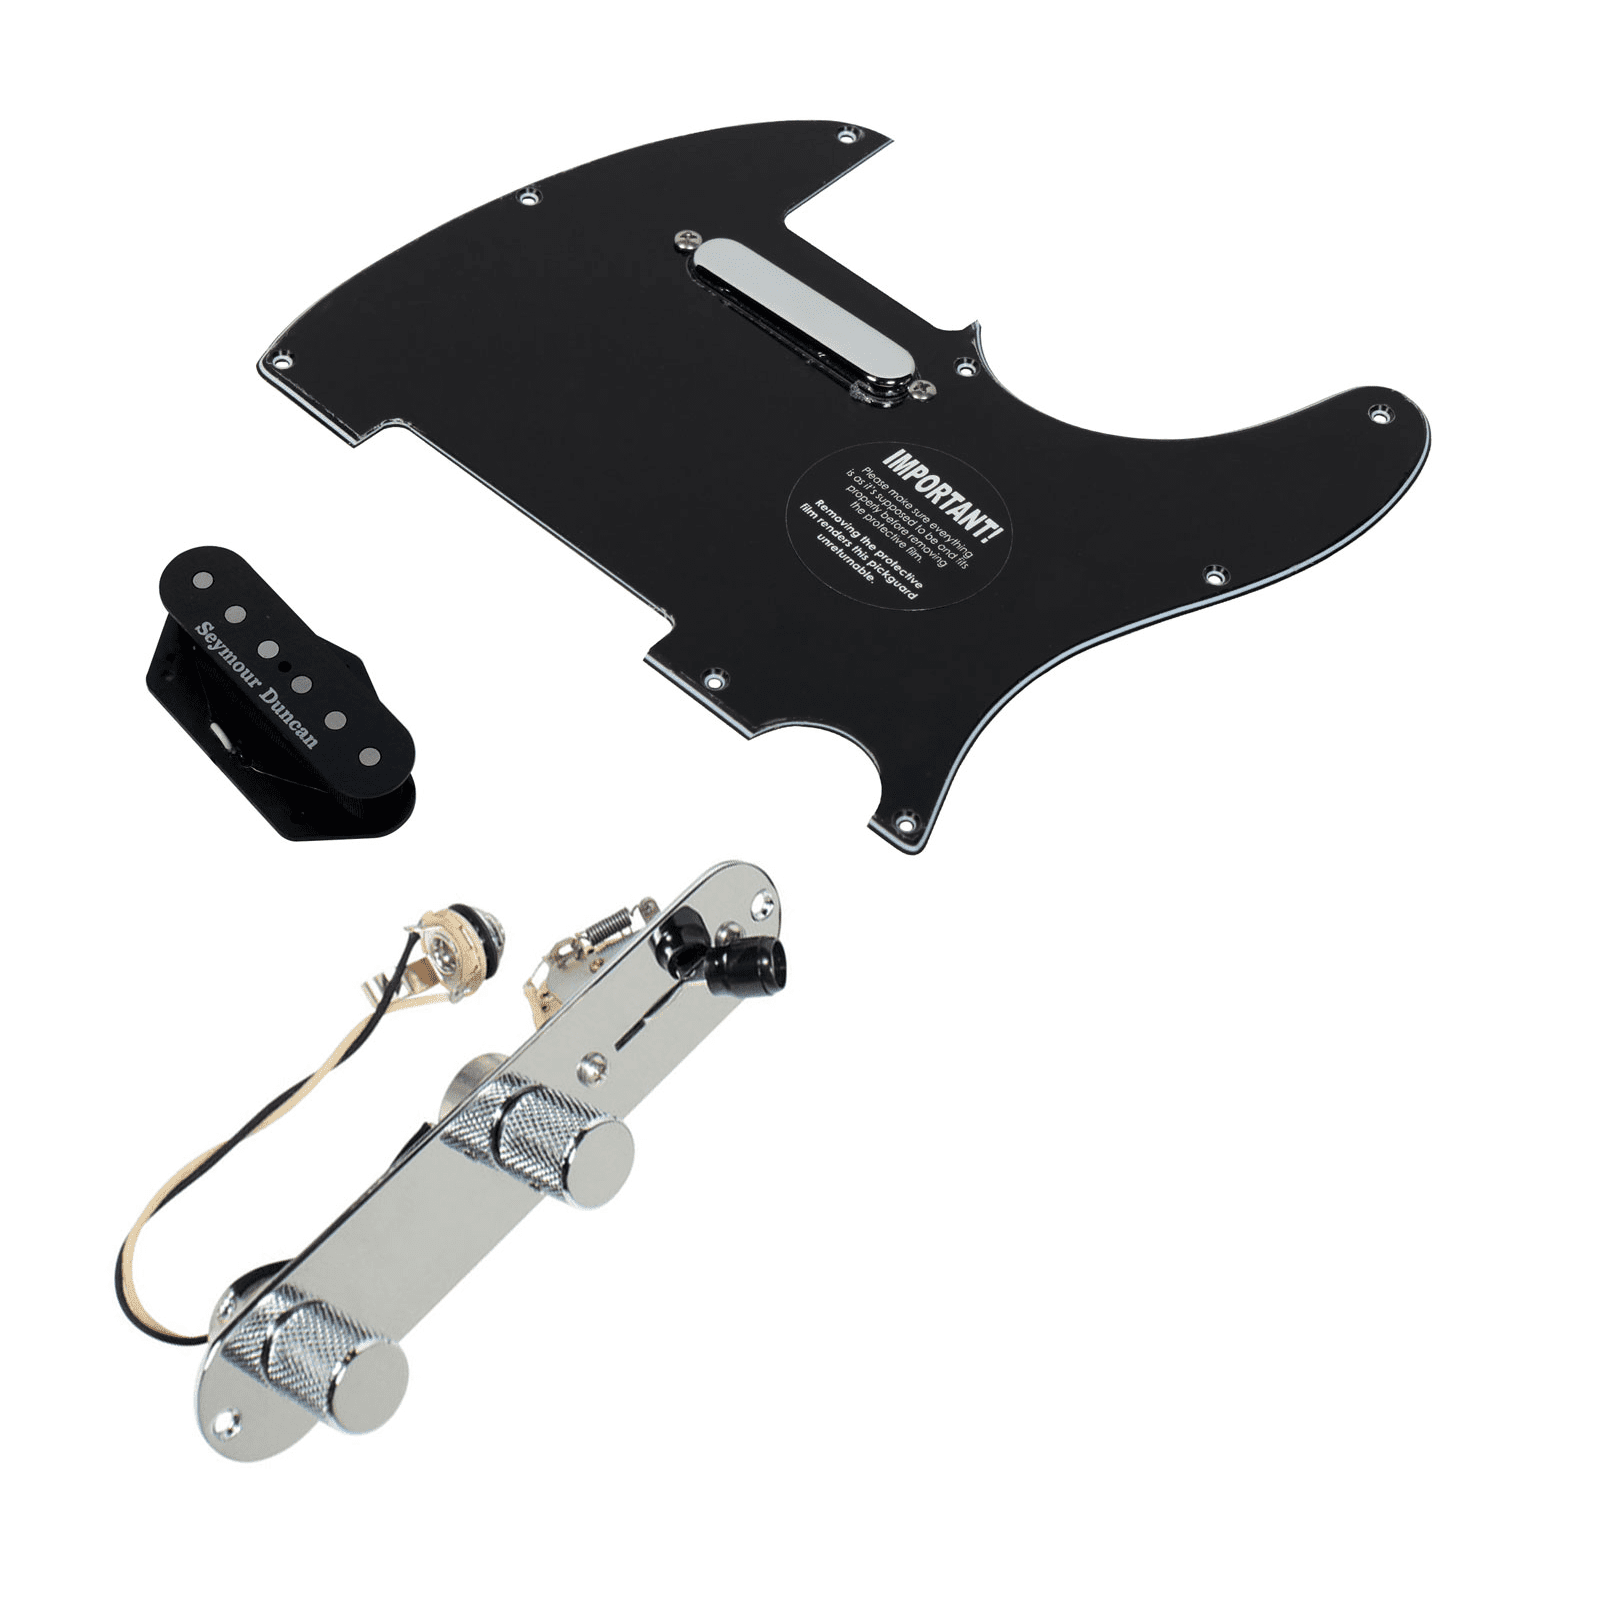 Fender Tele Telecaster Loaded Pickguard Seymour Duncan Hot Pickups T3W, Black by